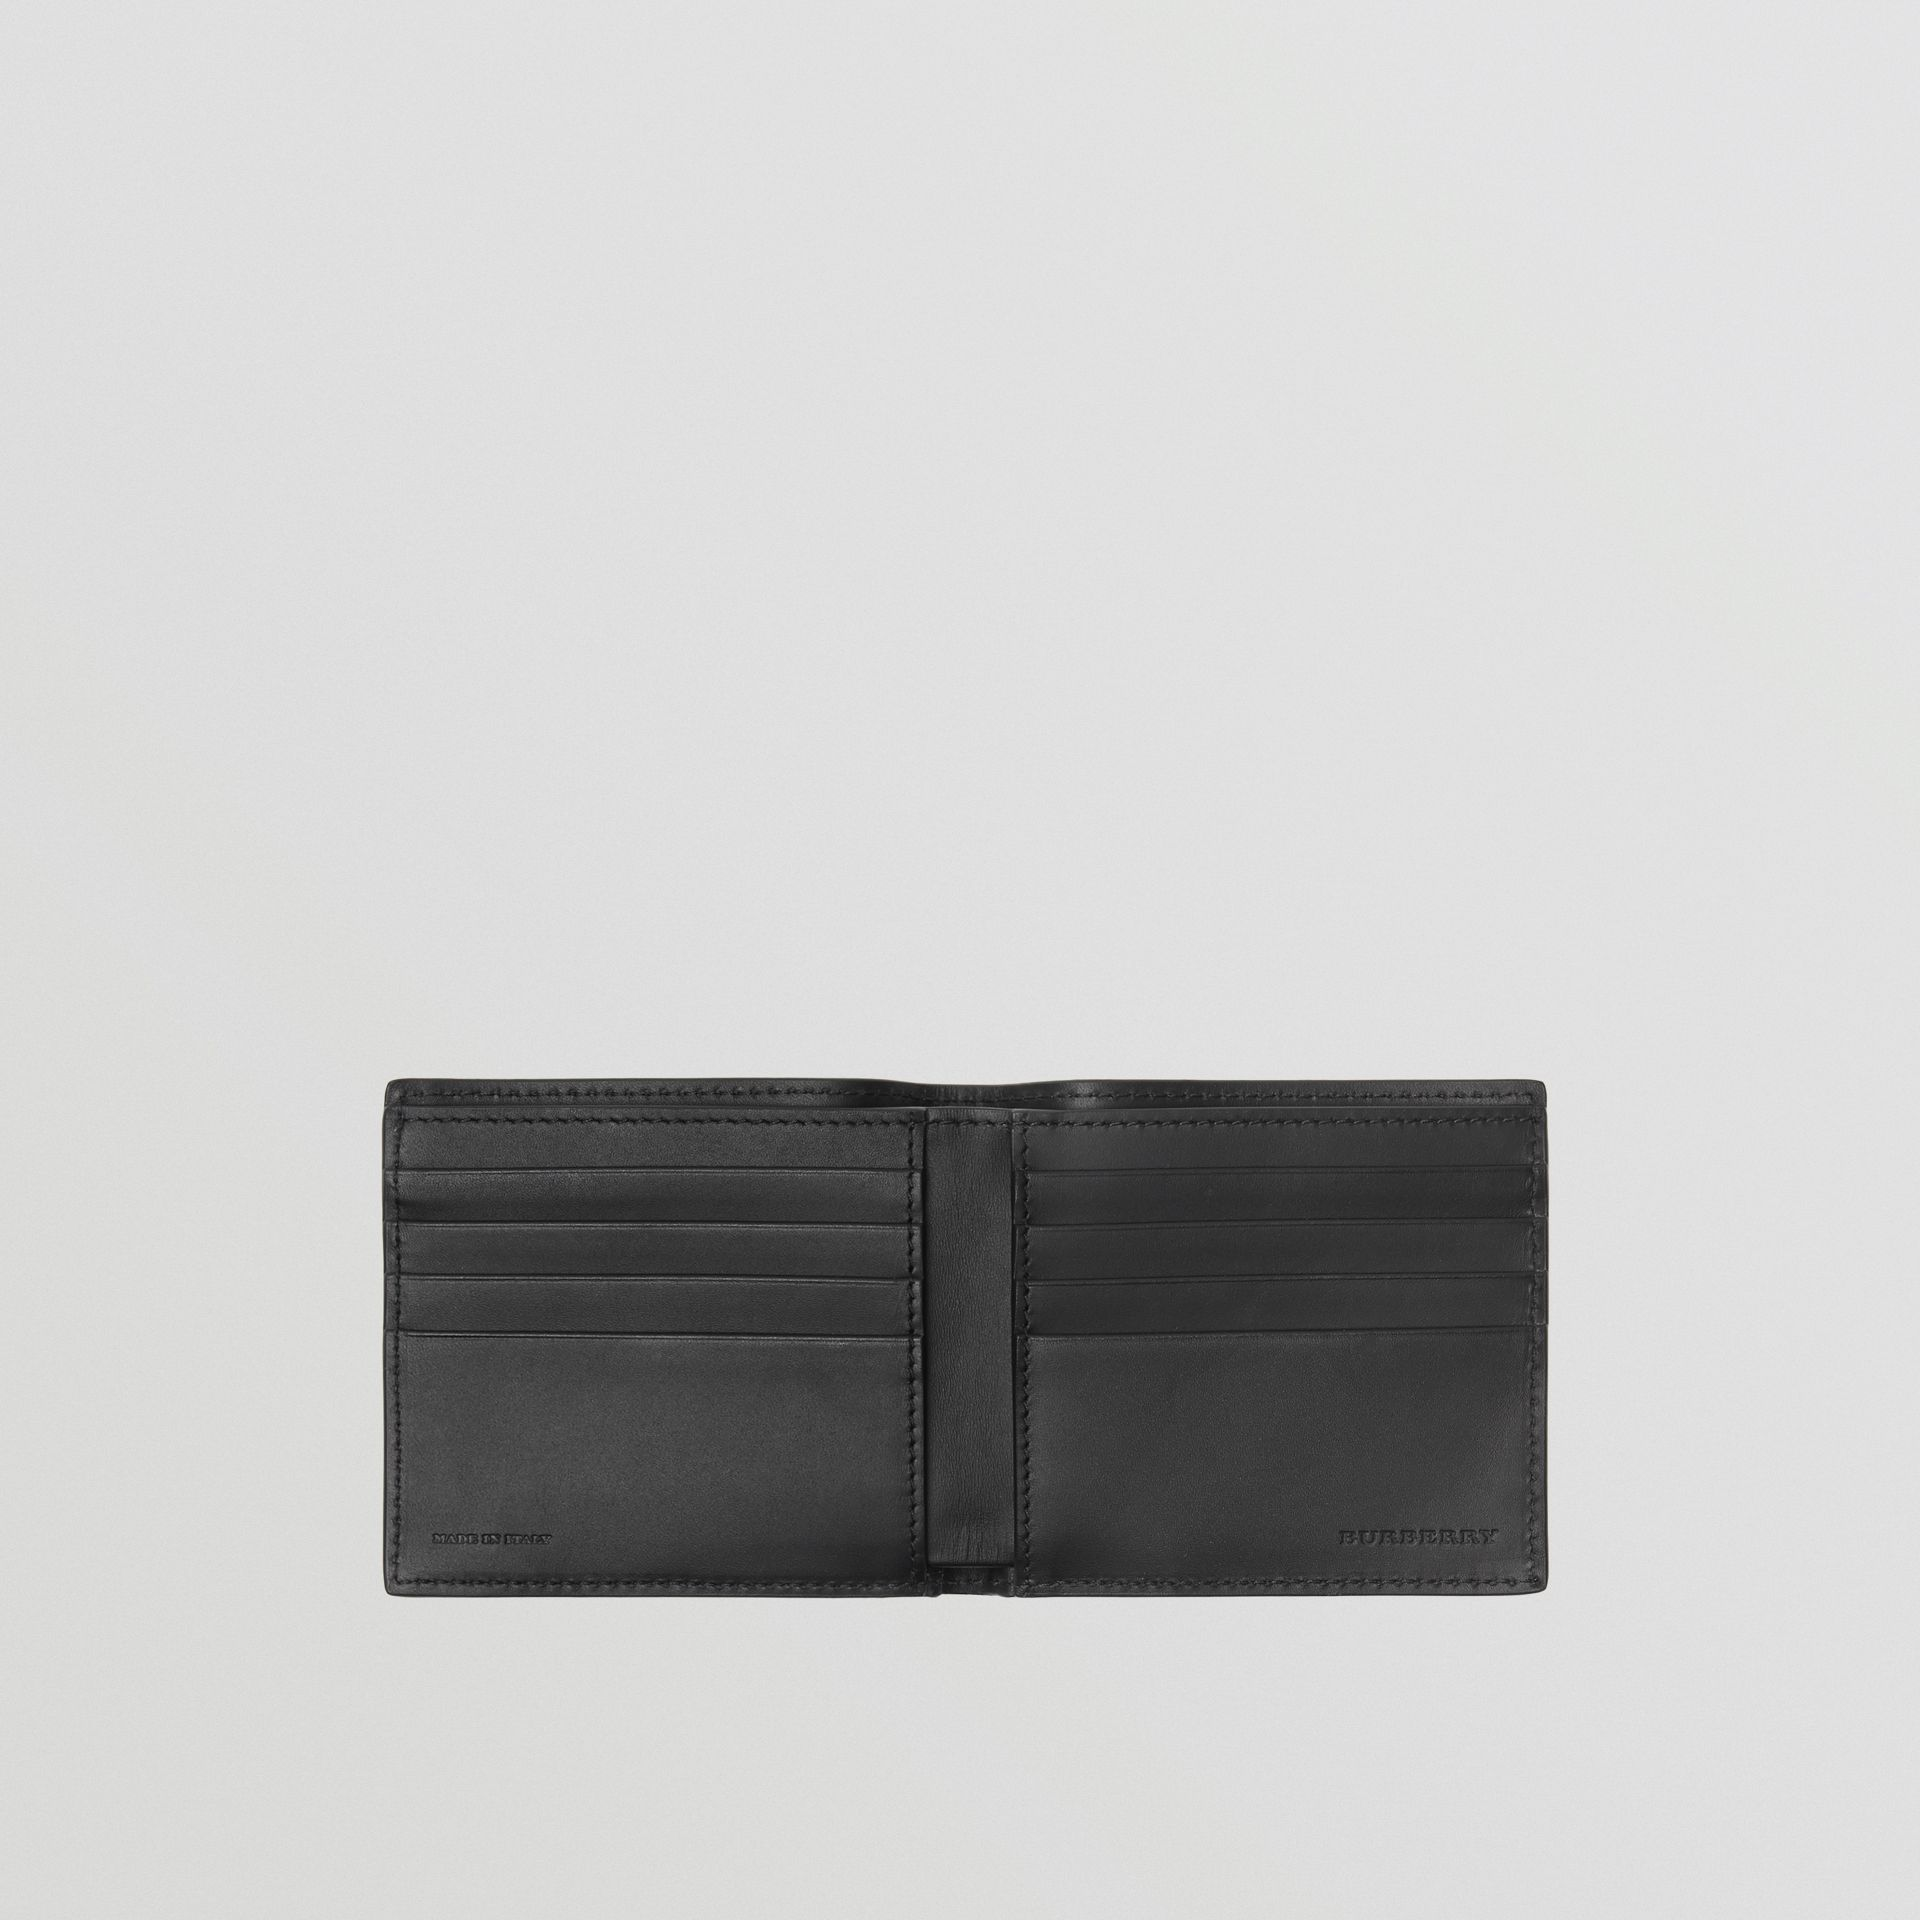 Graffiti Print Leather International Bifold Wallet in Black - Men | Burberry - gallery image 2